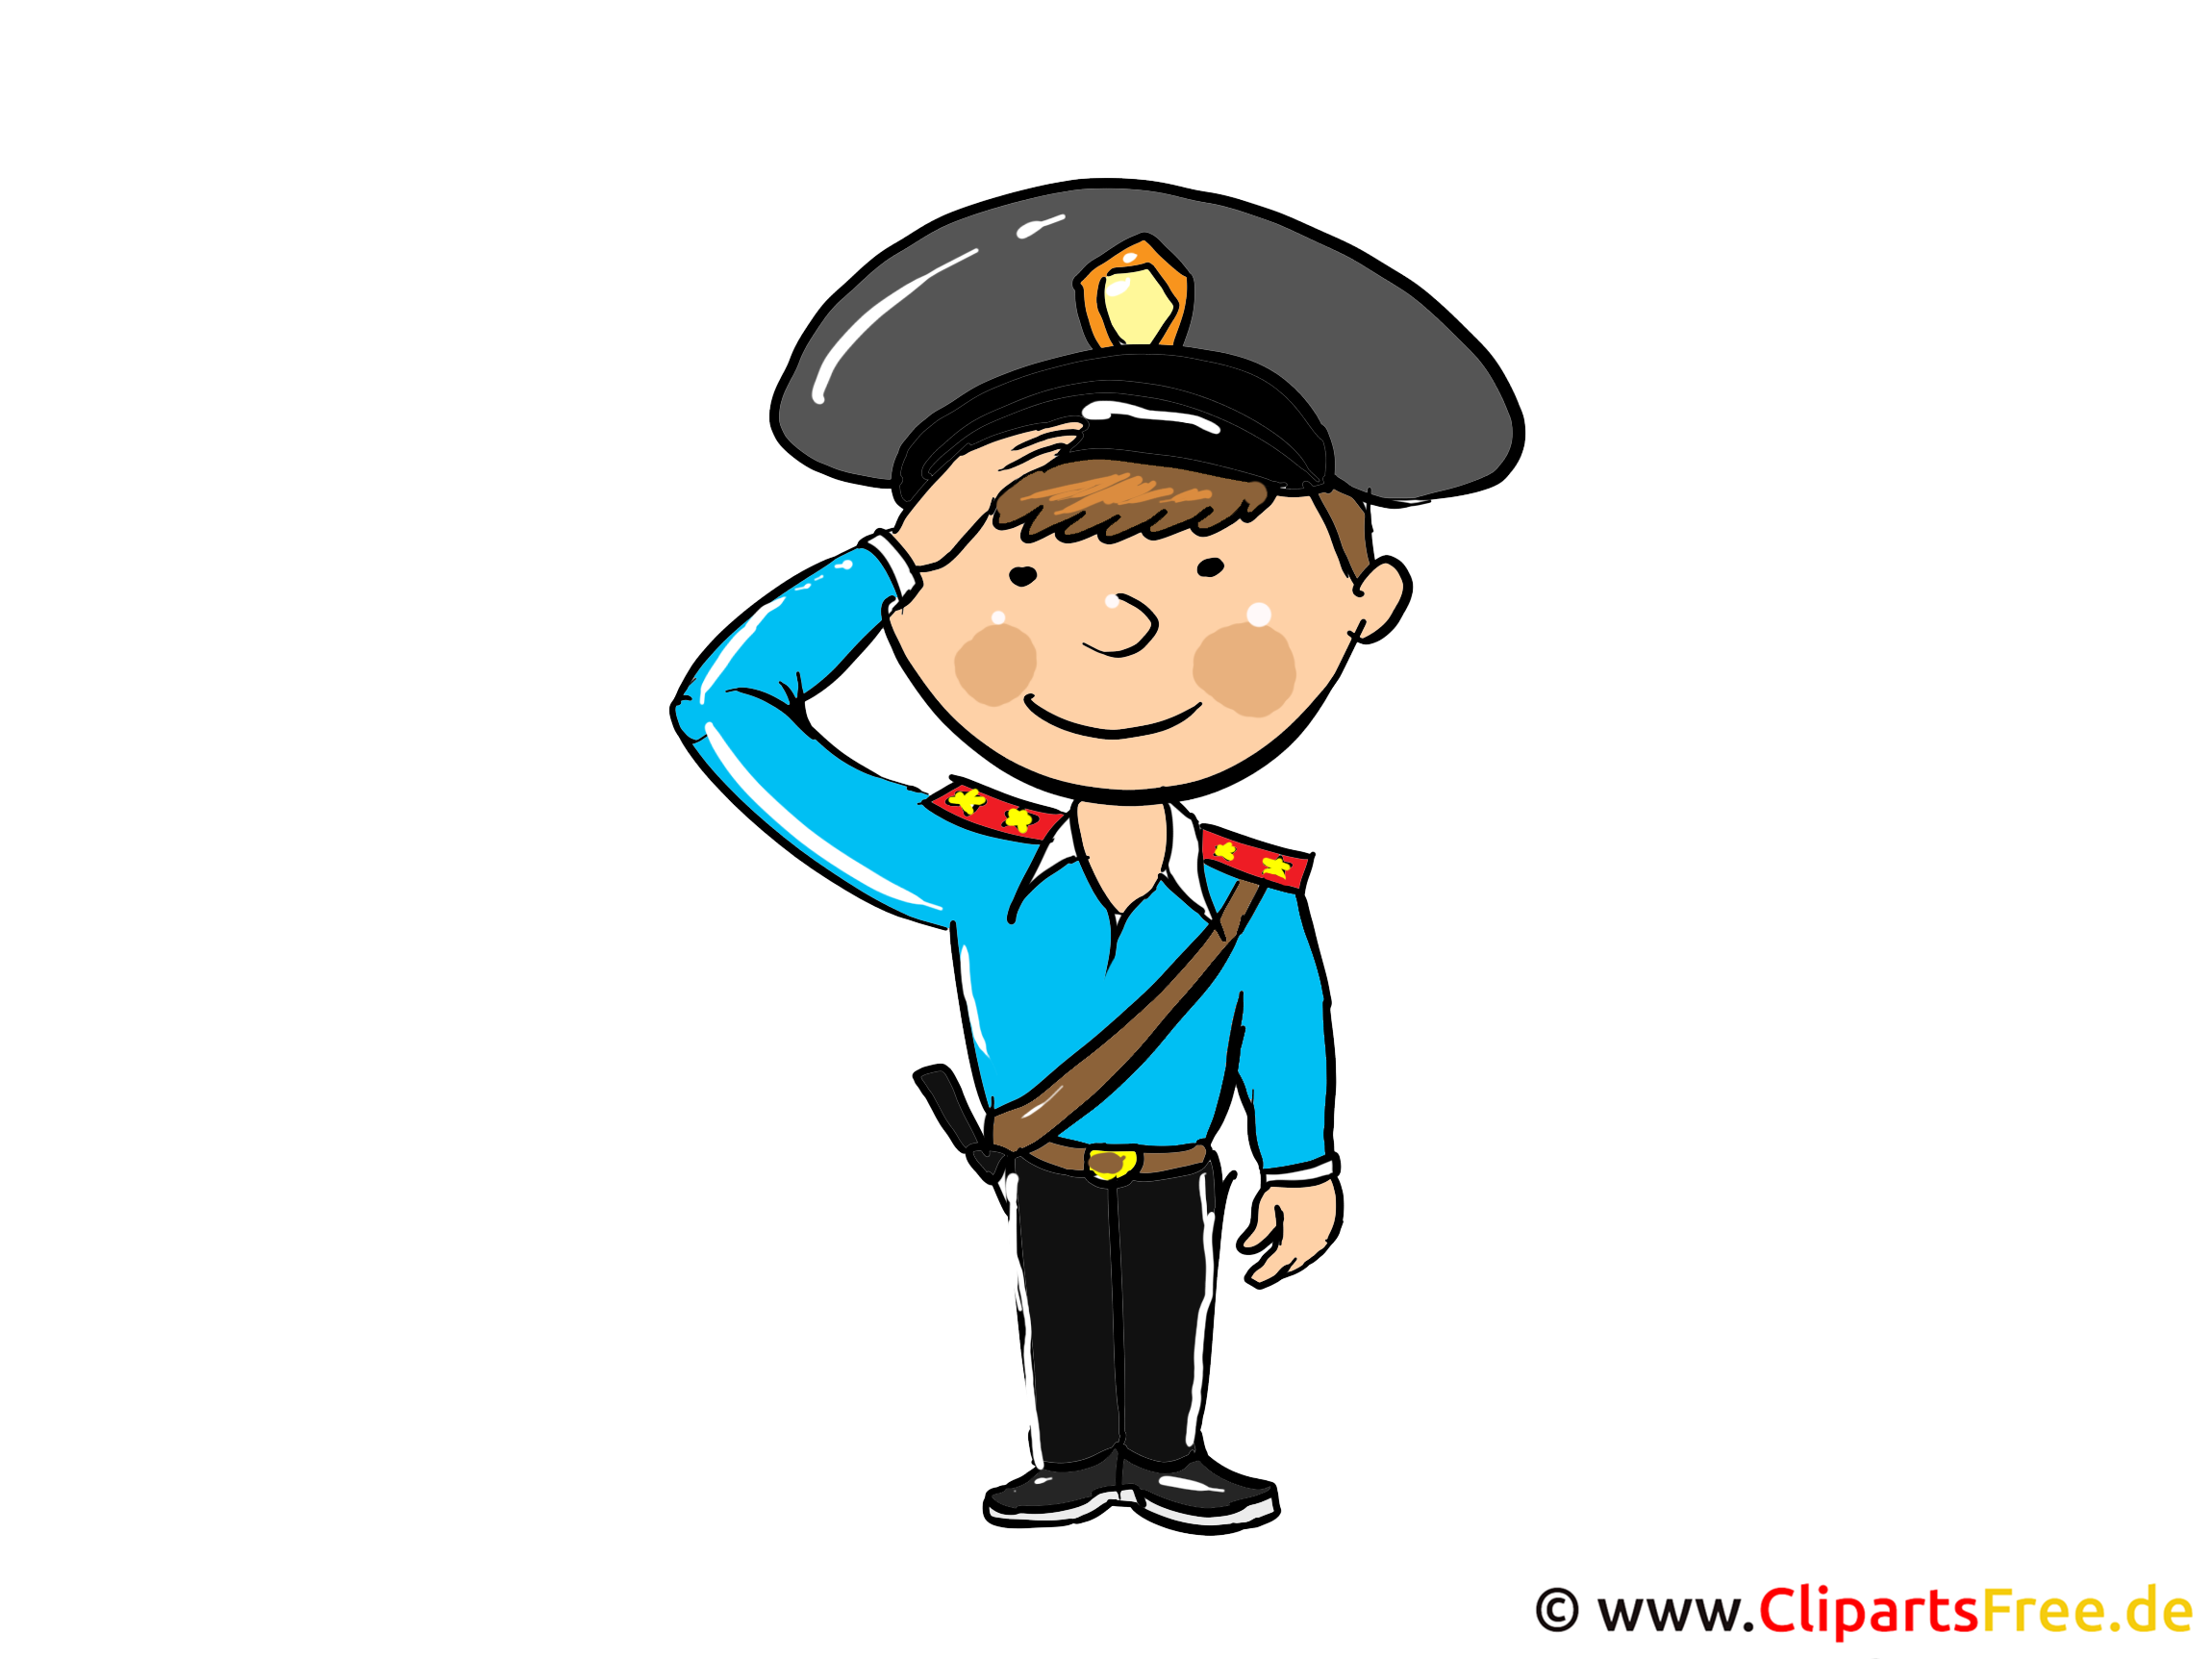 Polizist Clipart, Bild, Cartoon, Illustration kostenlos